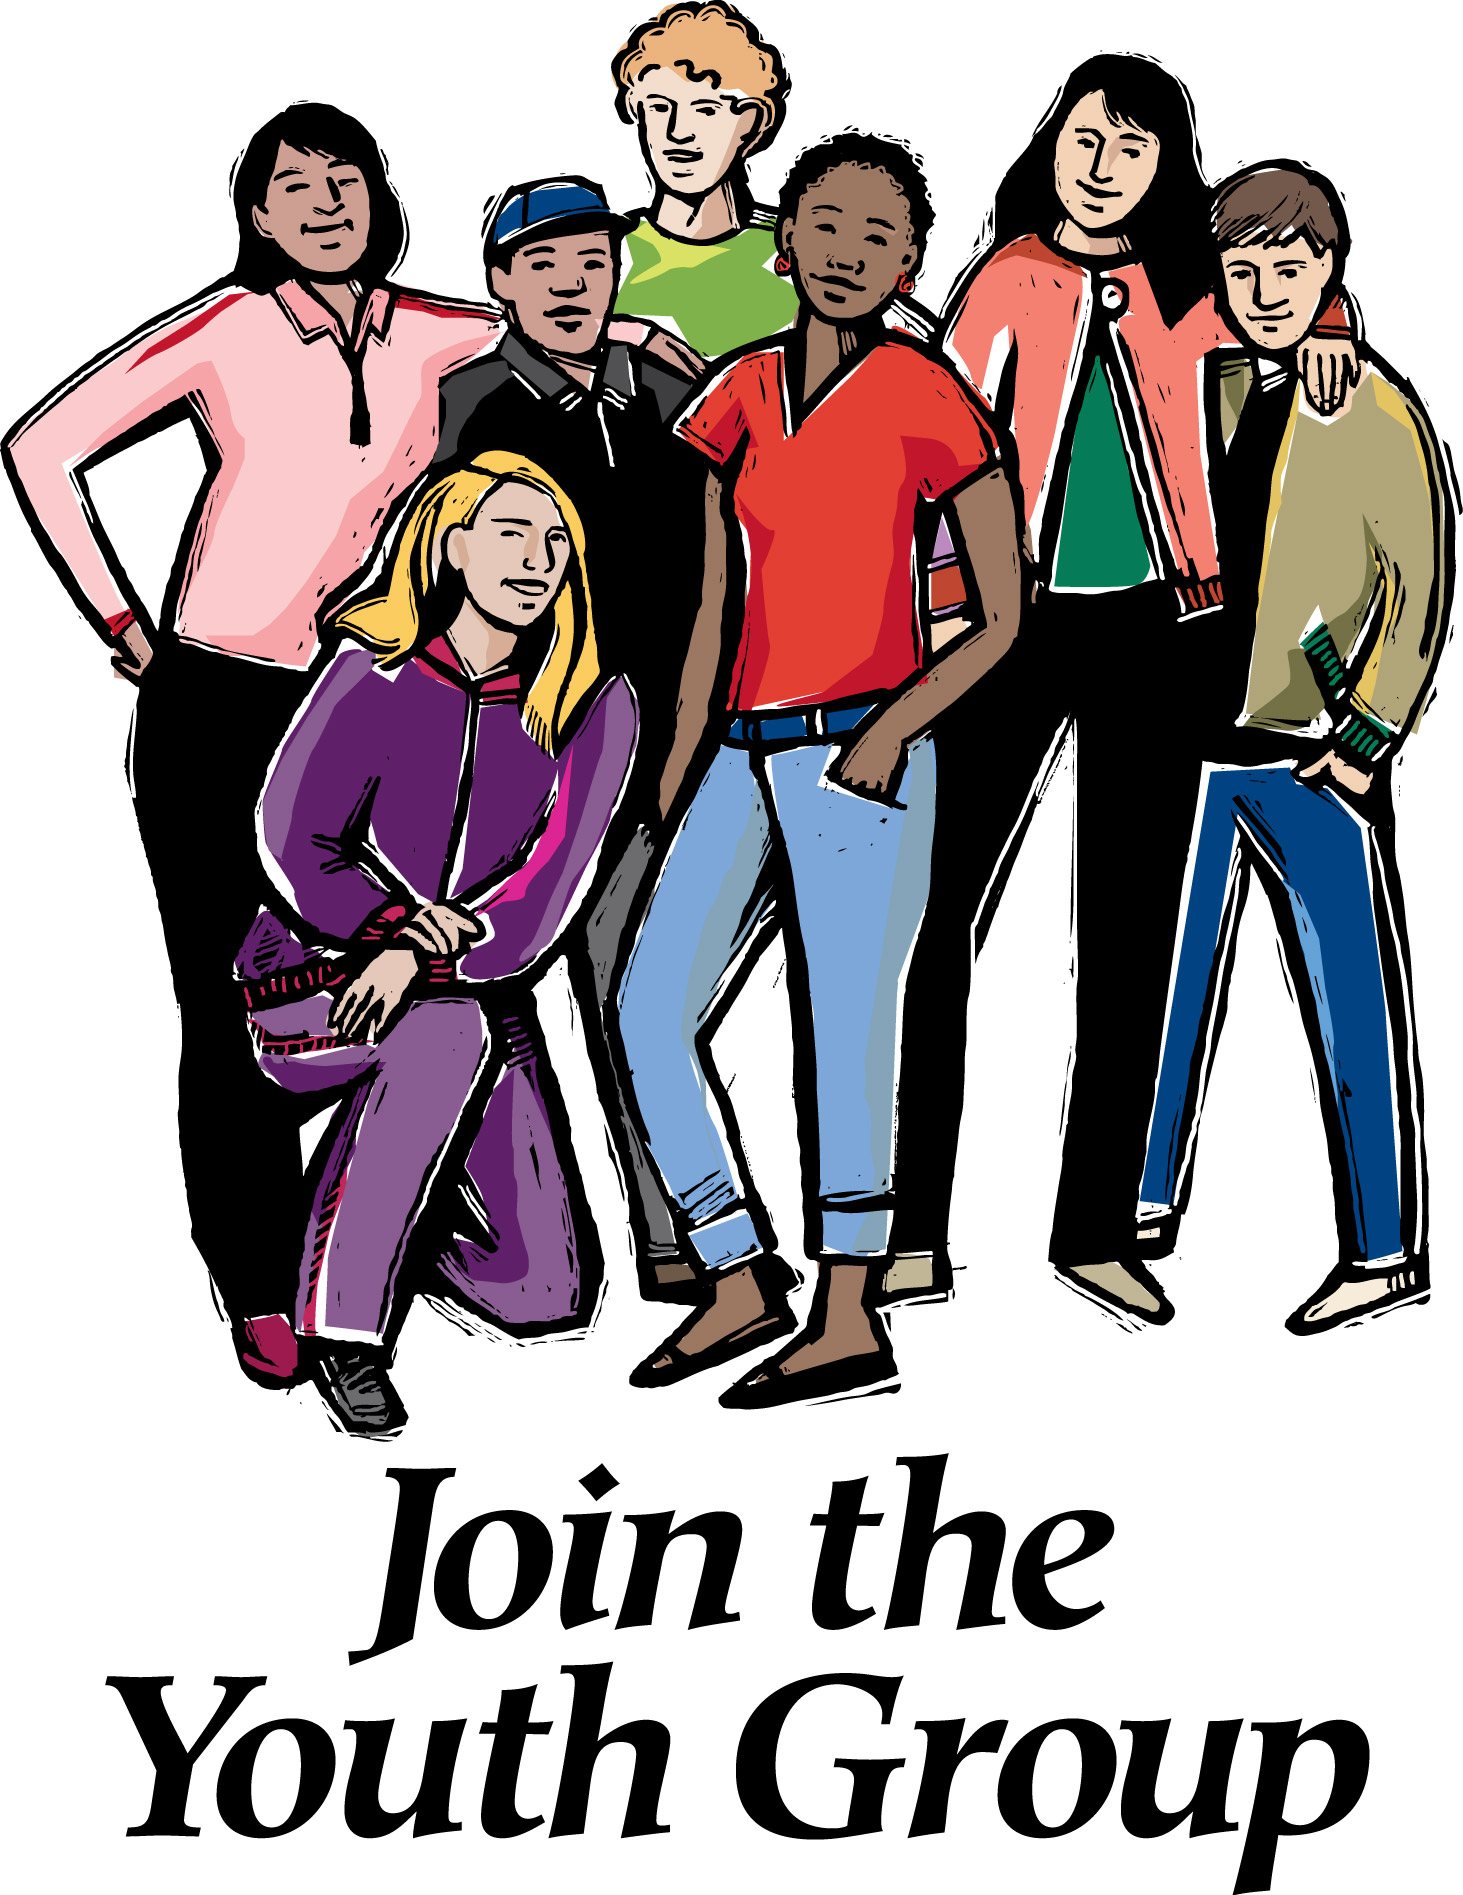 Youth Group Clip Art-Youth Group Clip Art-14